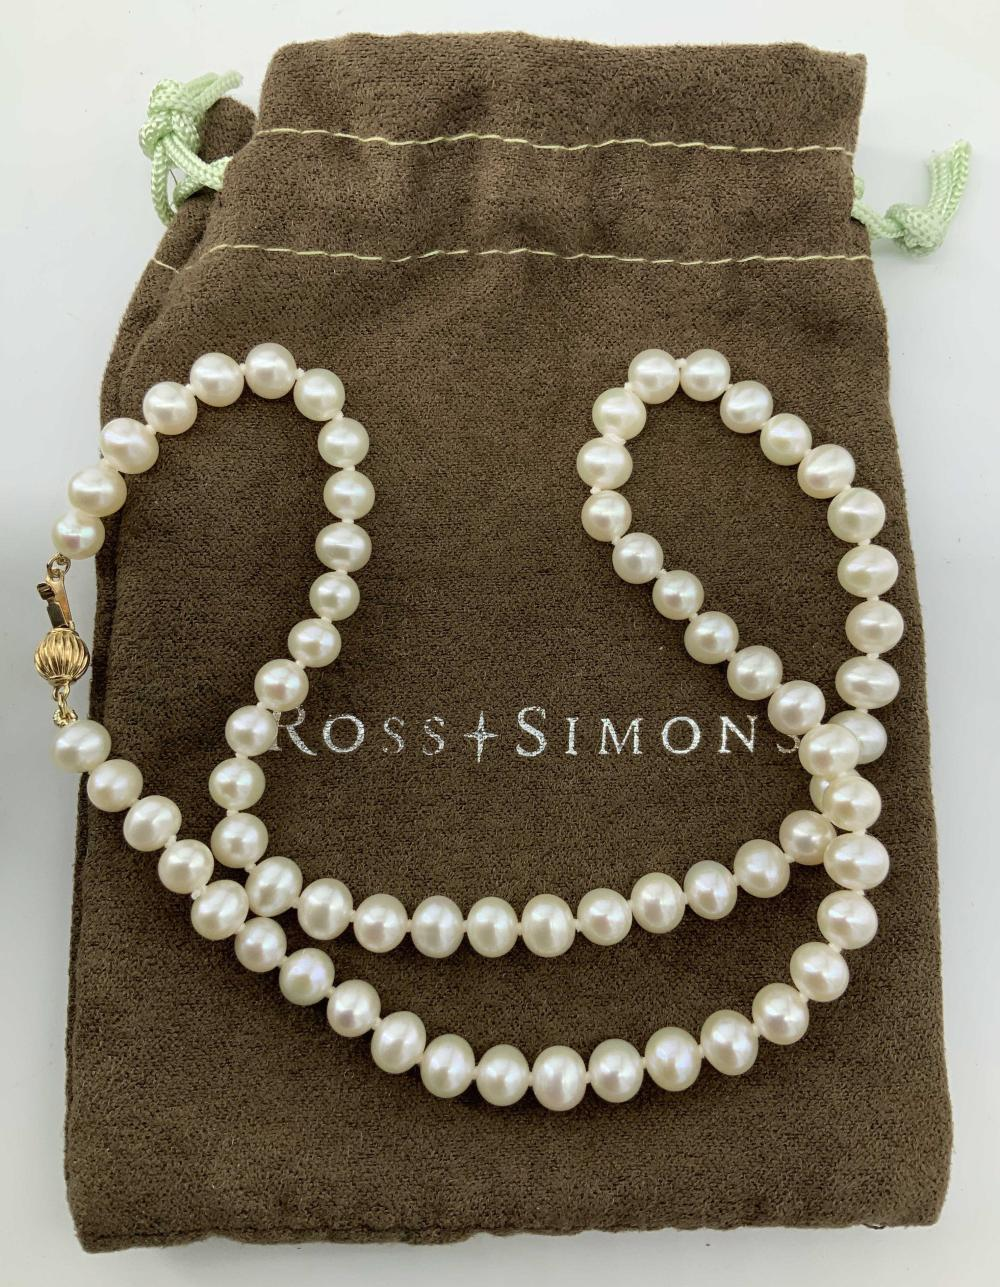 Luxury ROSS SIMONS White Pearl Necklace, Box